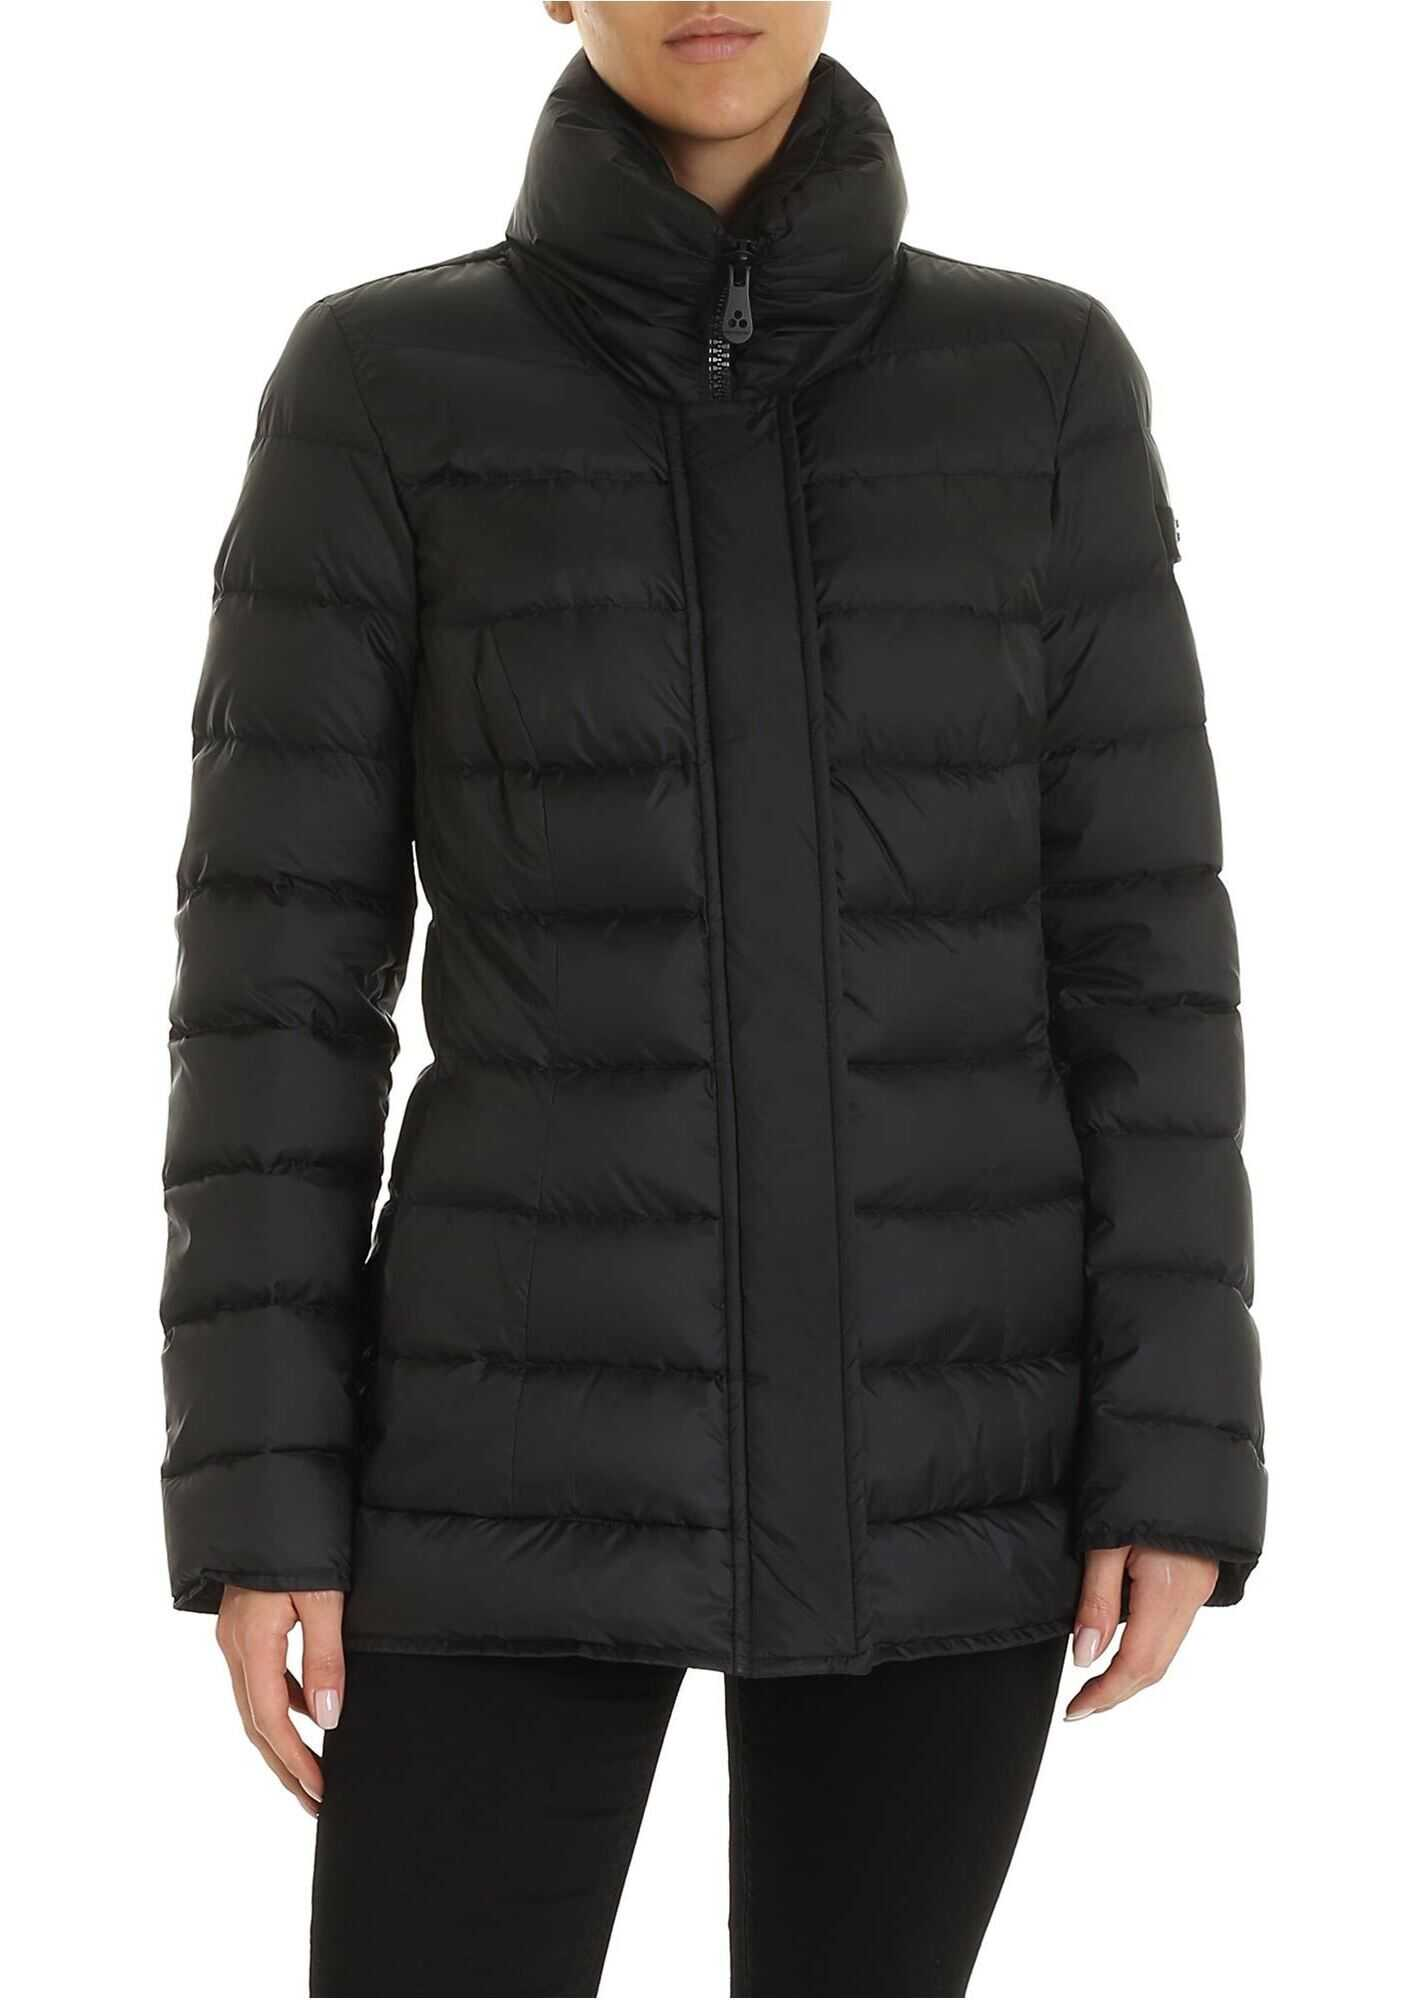 Peuterey Flagstaff Down Jacket In Black Black